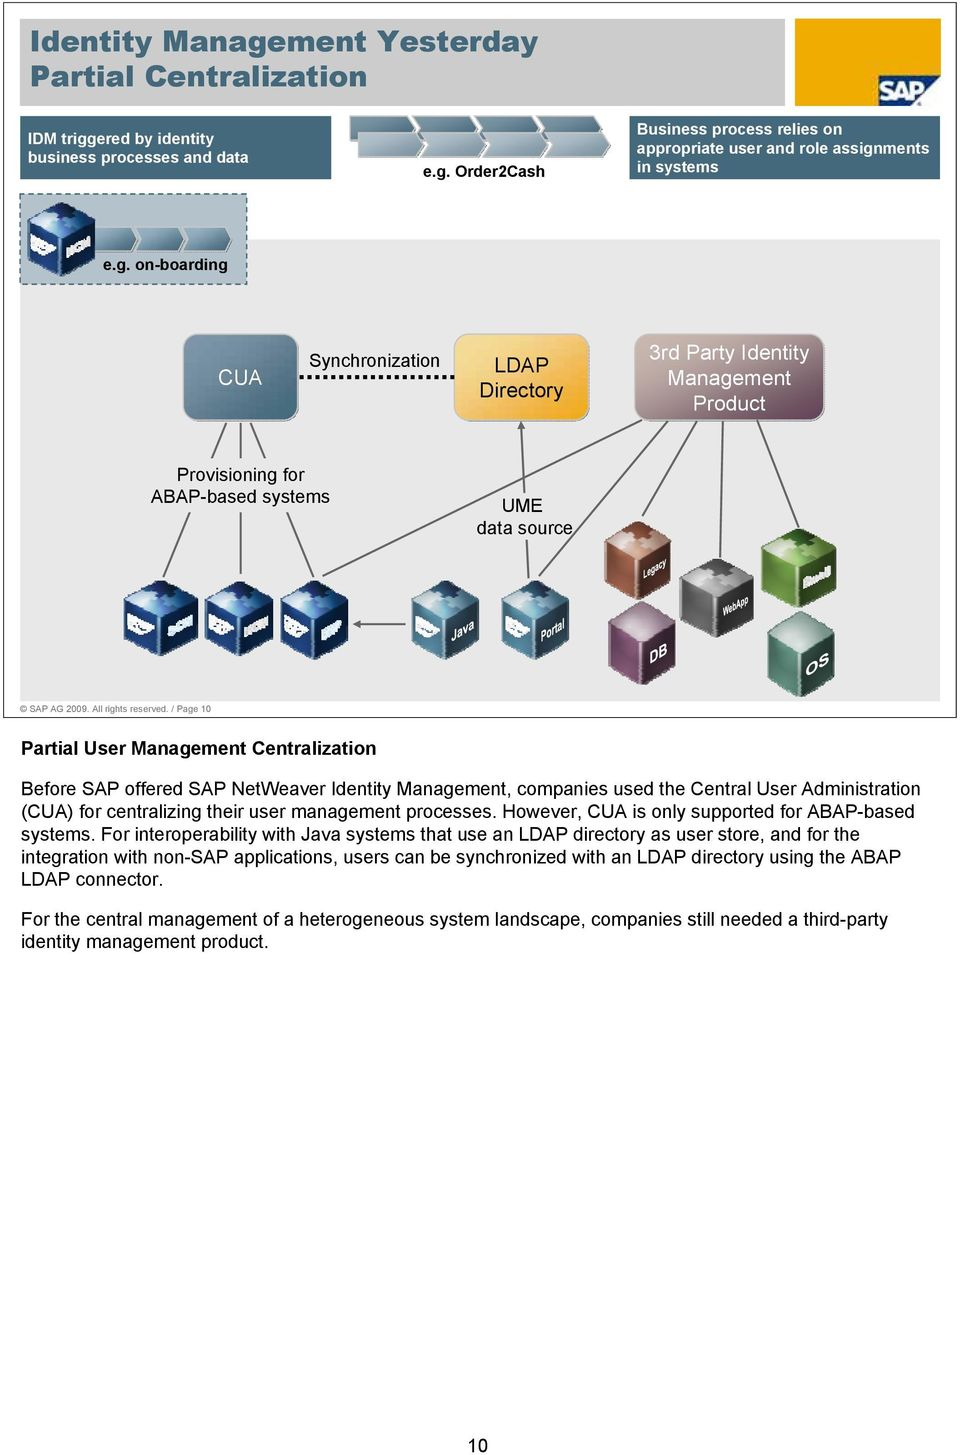 / Page 10 Partial User Management Centralization Before SAP offered SAP NetWeaver Identity Management, companies used the Central User Administration (CUA) for centralizing their user management